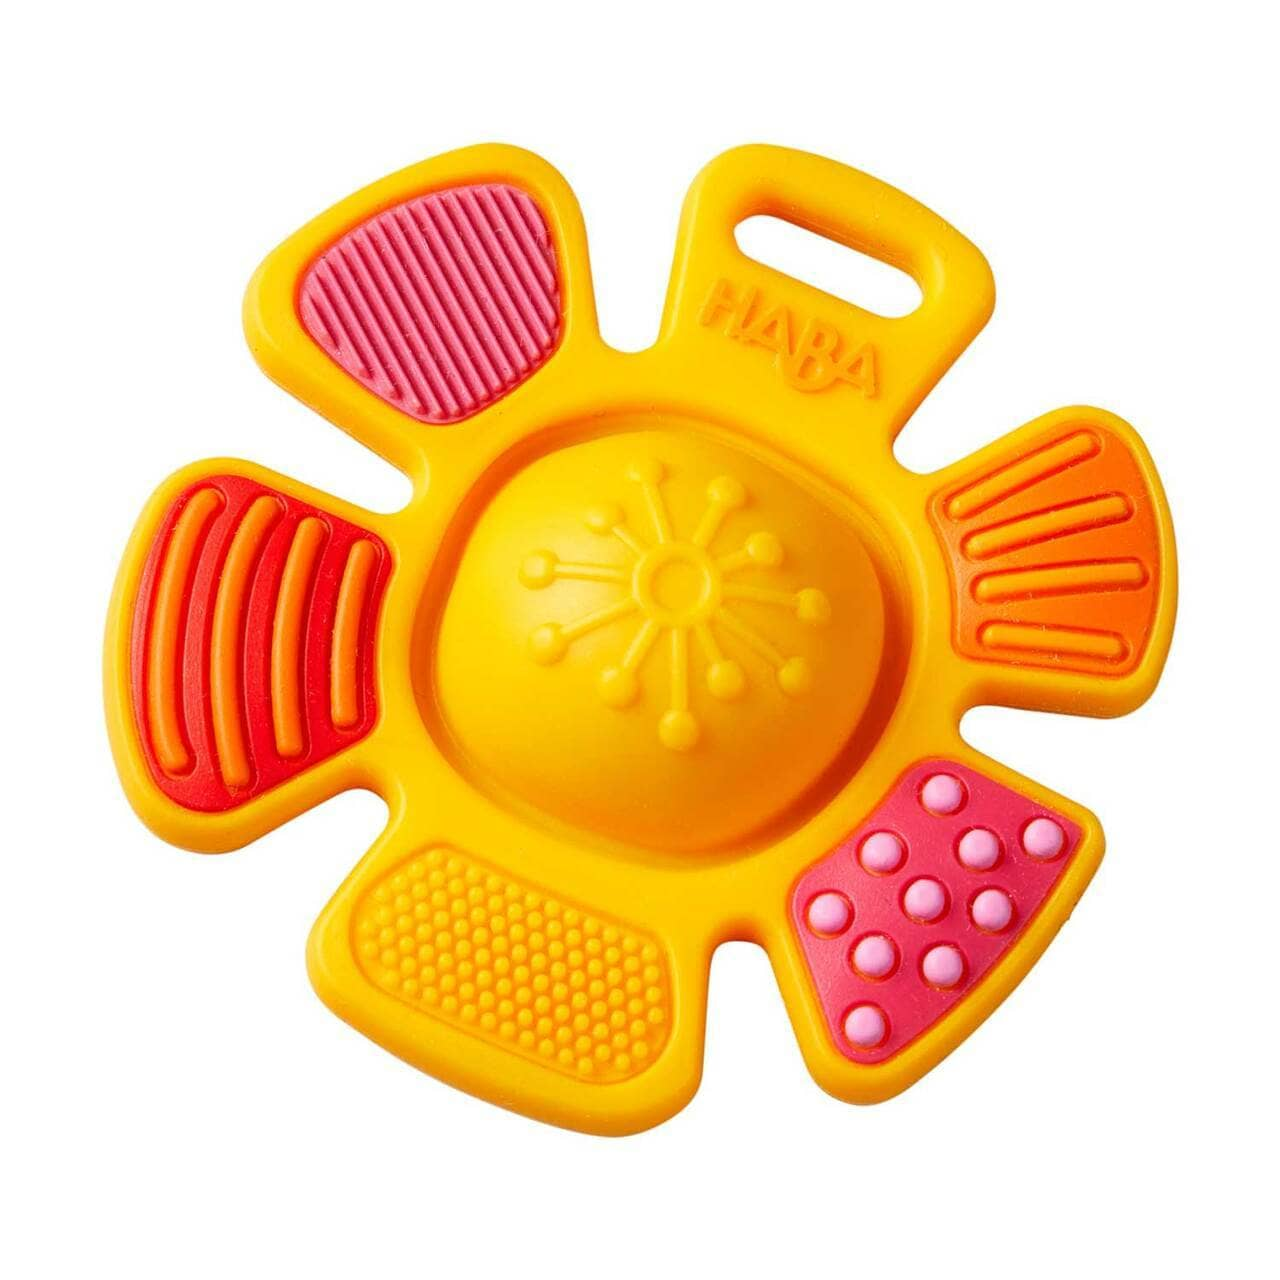 Popping Flower Clutching Toy